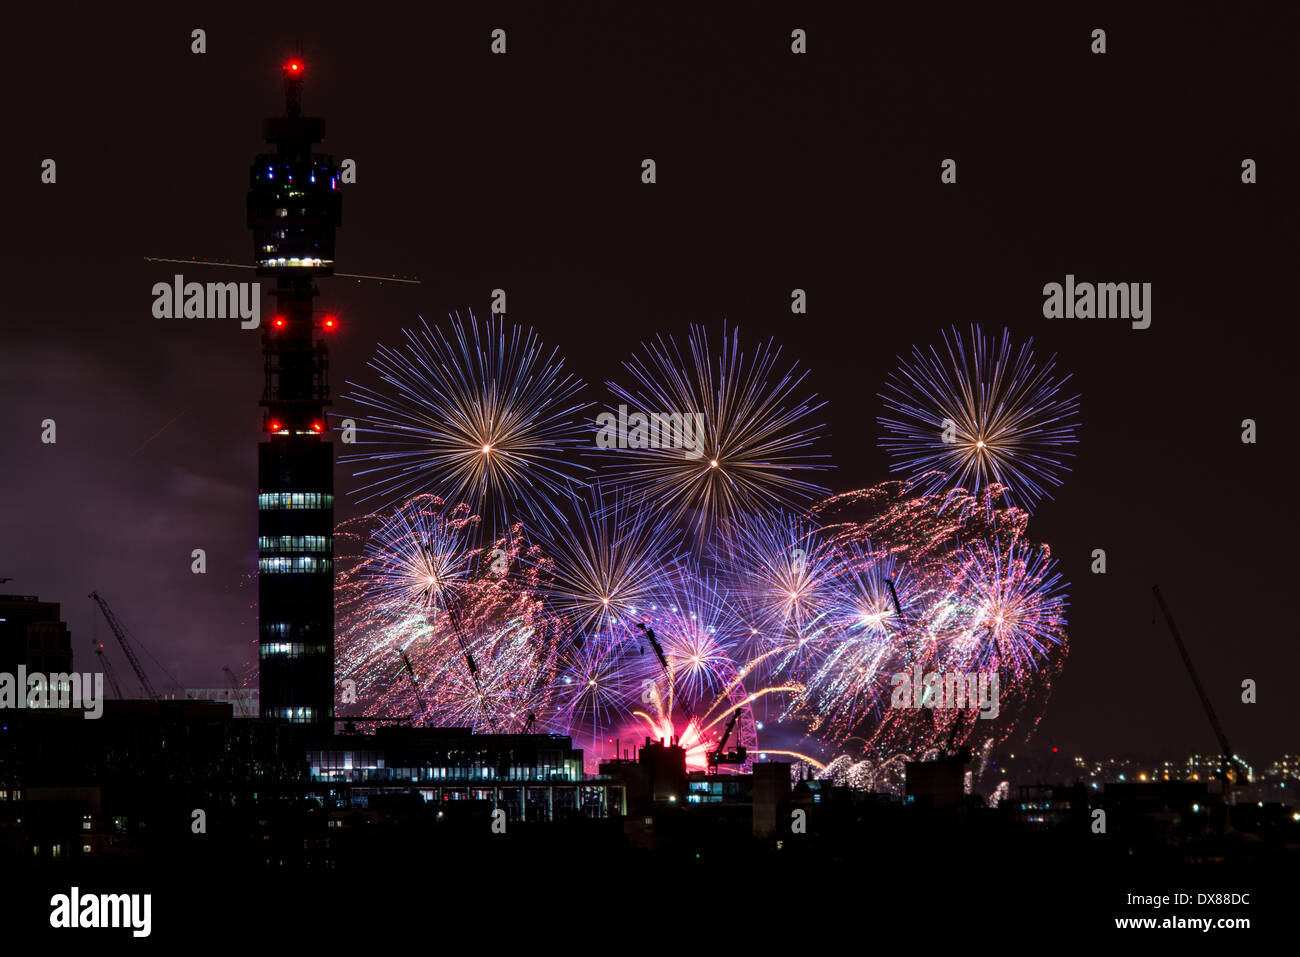 BT Tower and the London Eye viewed at night from Primrose ...